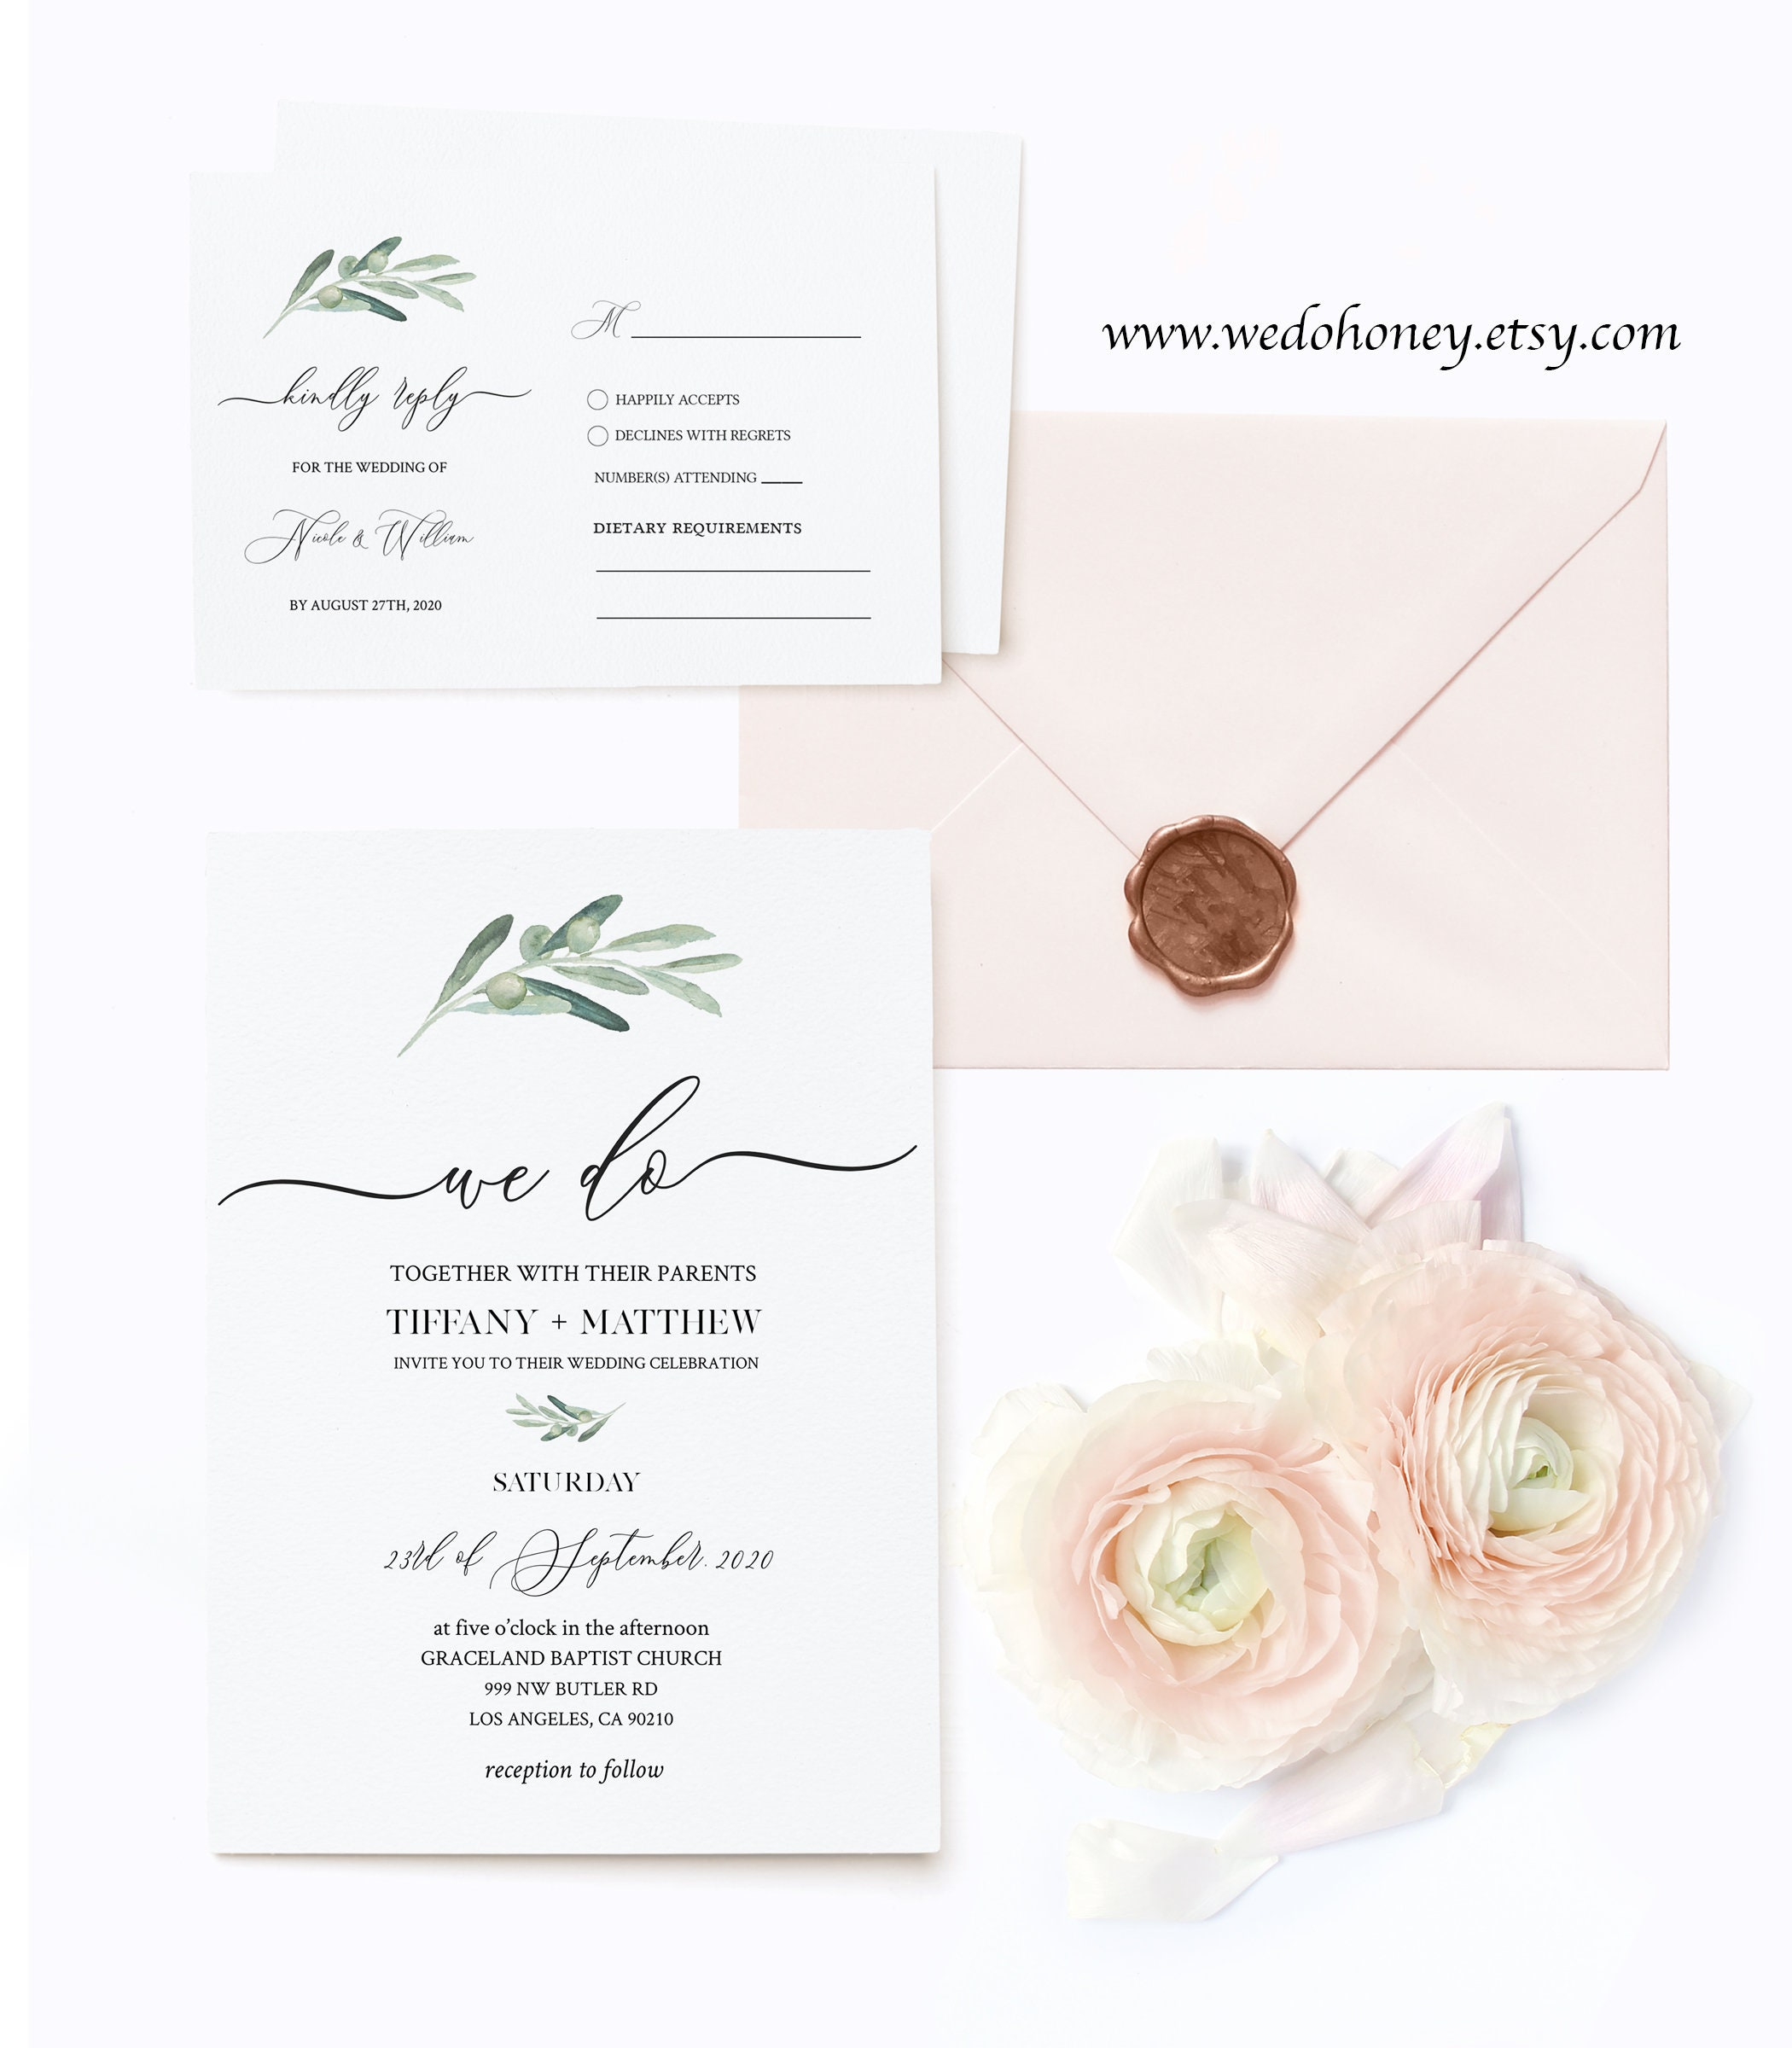 Olive Greenery Wedding Invitation Set Template, Details Card, RSVP, Rustic and Simple Ceremony, Editable Text with Corjl #031